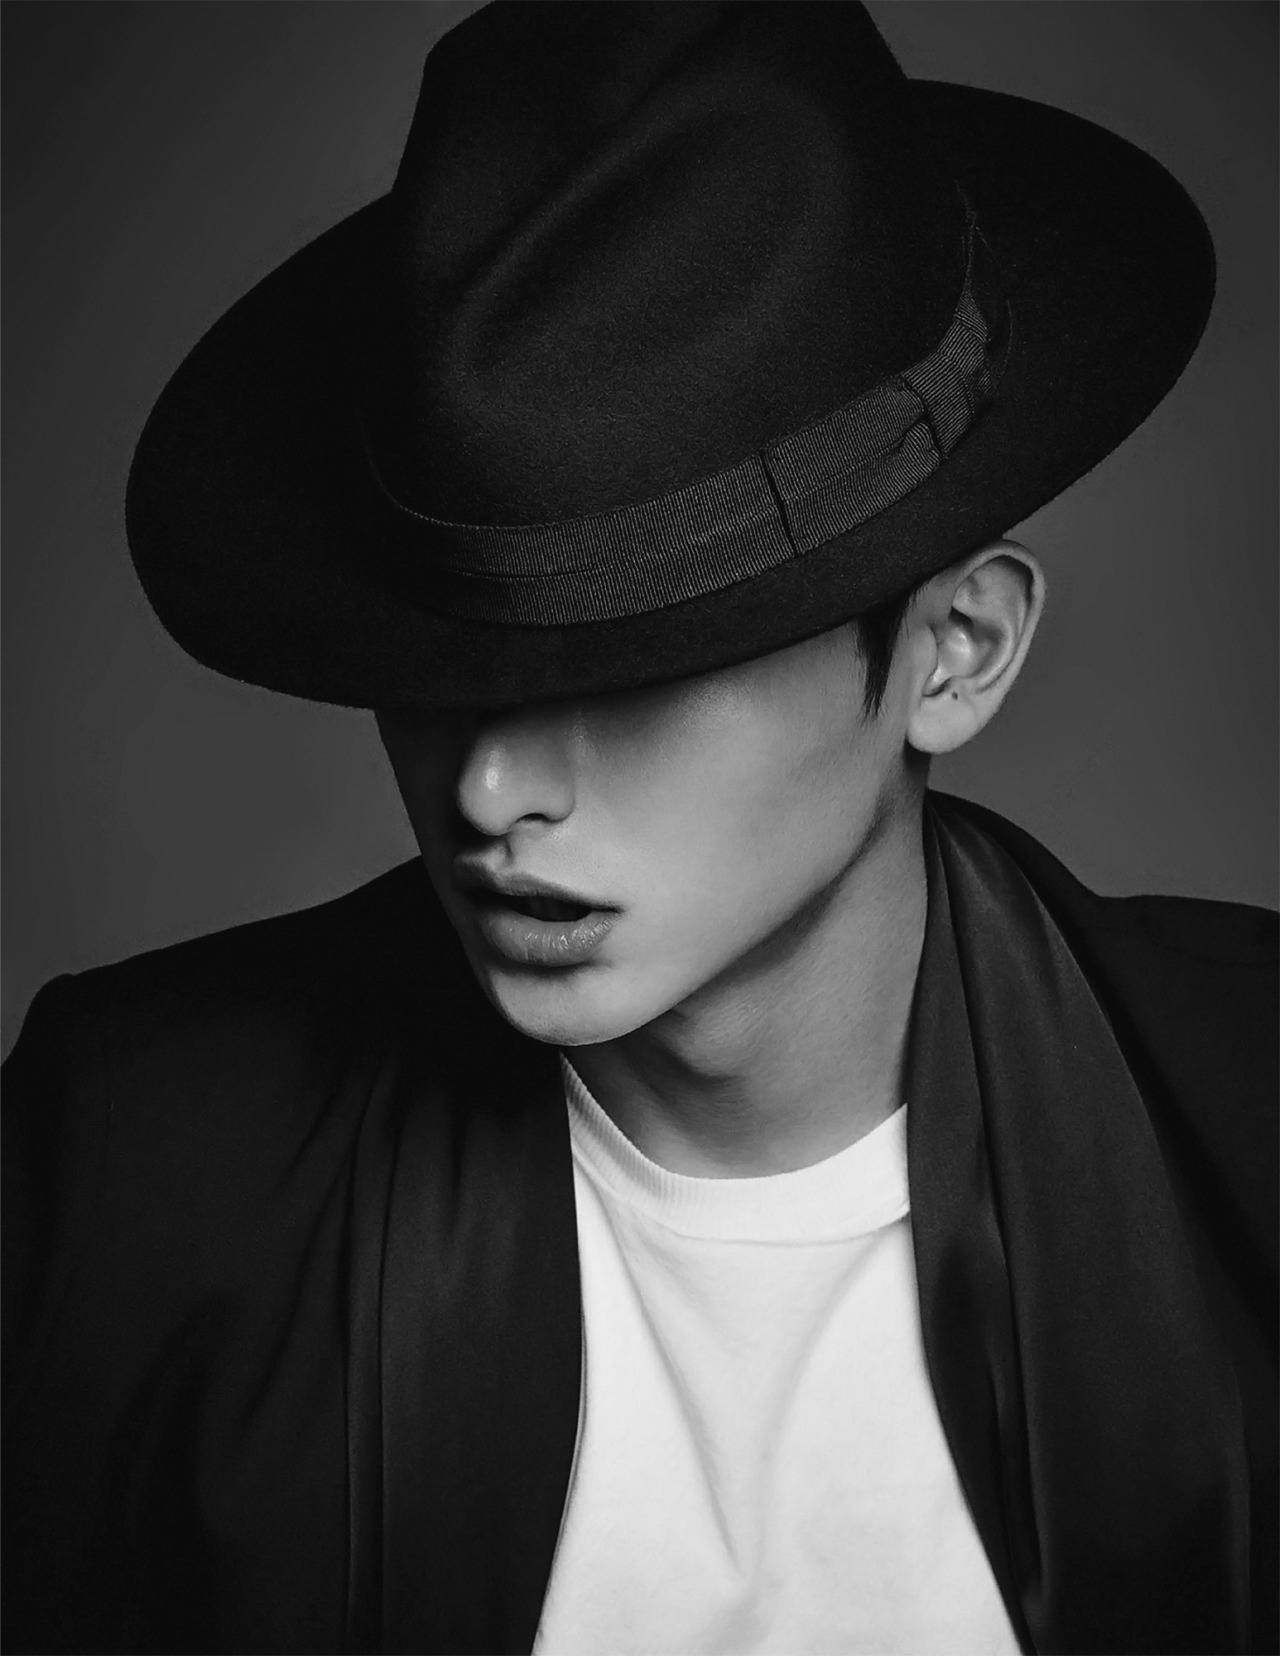 lee soo hyuk is classy in black and white for elle magazine